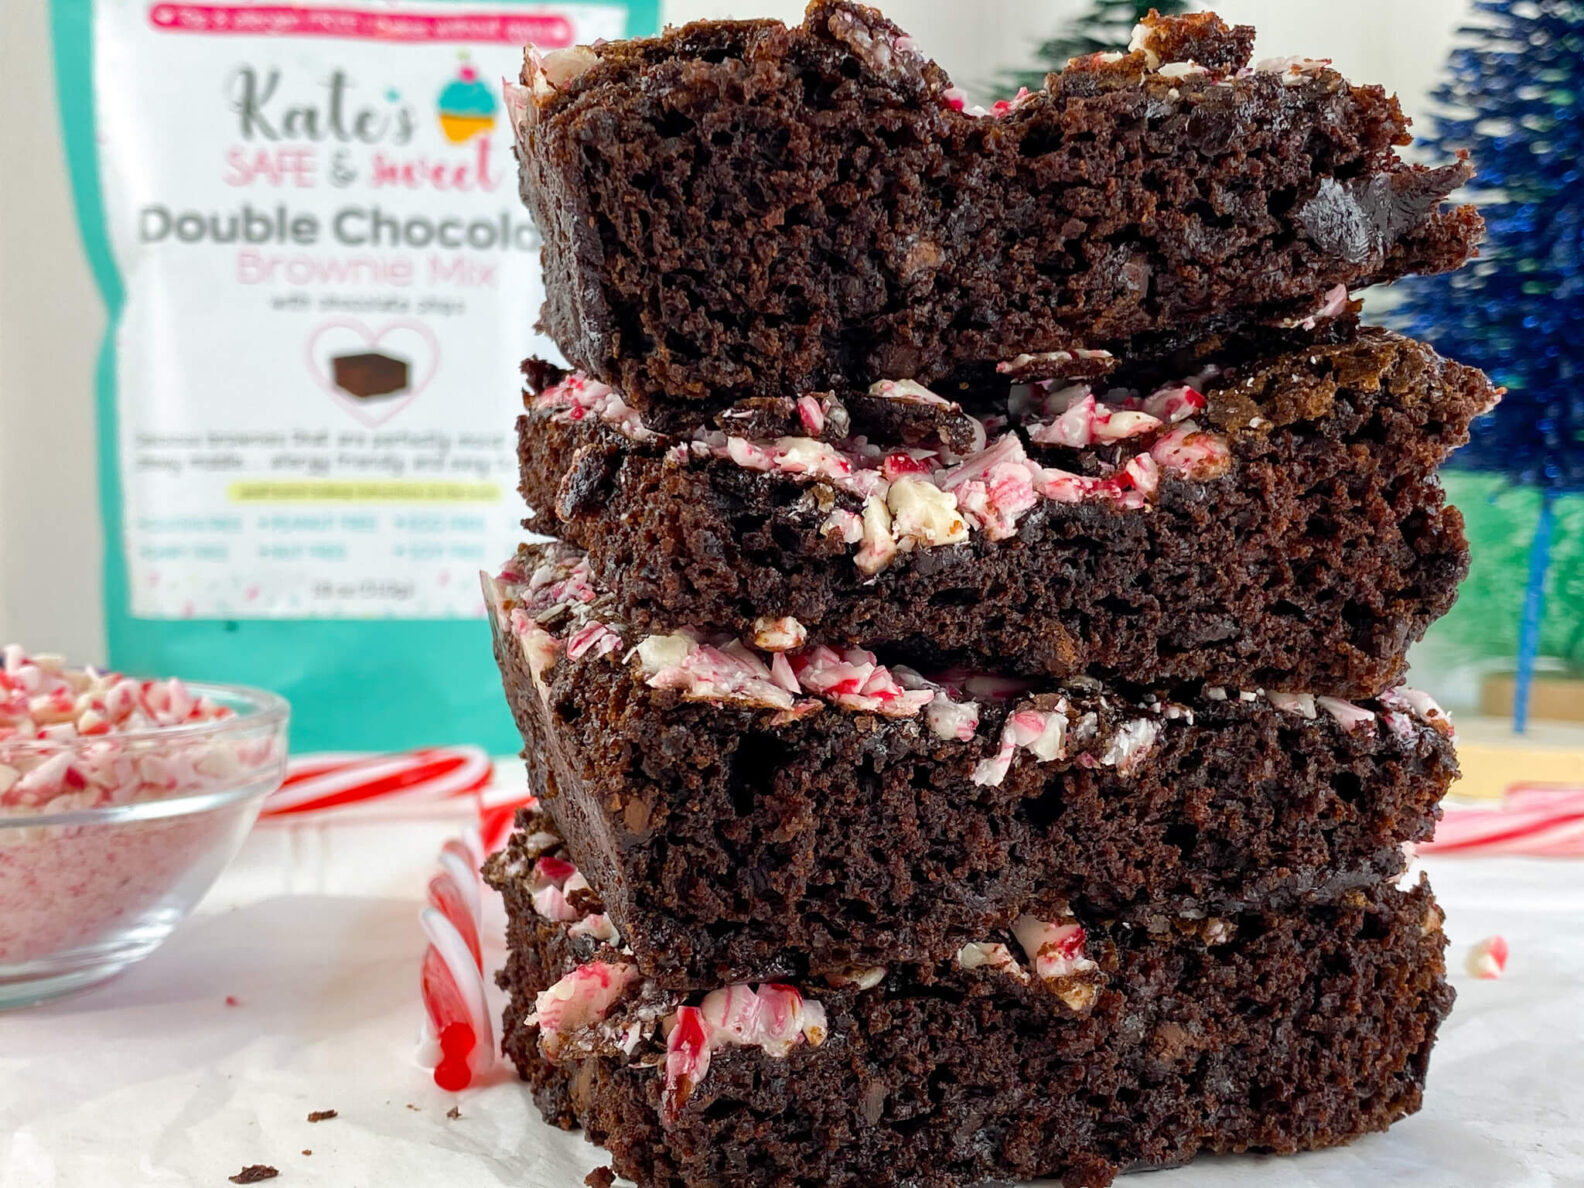 Kate's Safe and Sweet - Peppermint Brownies Stacked